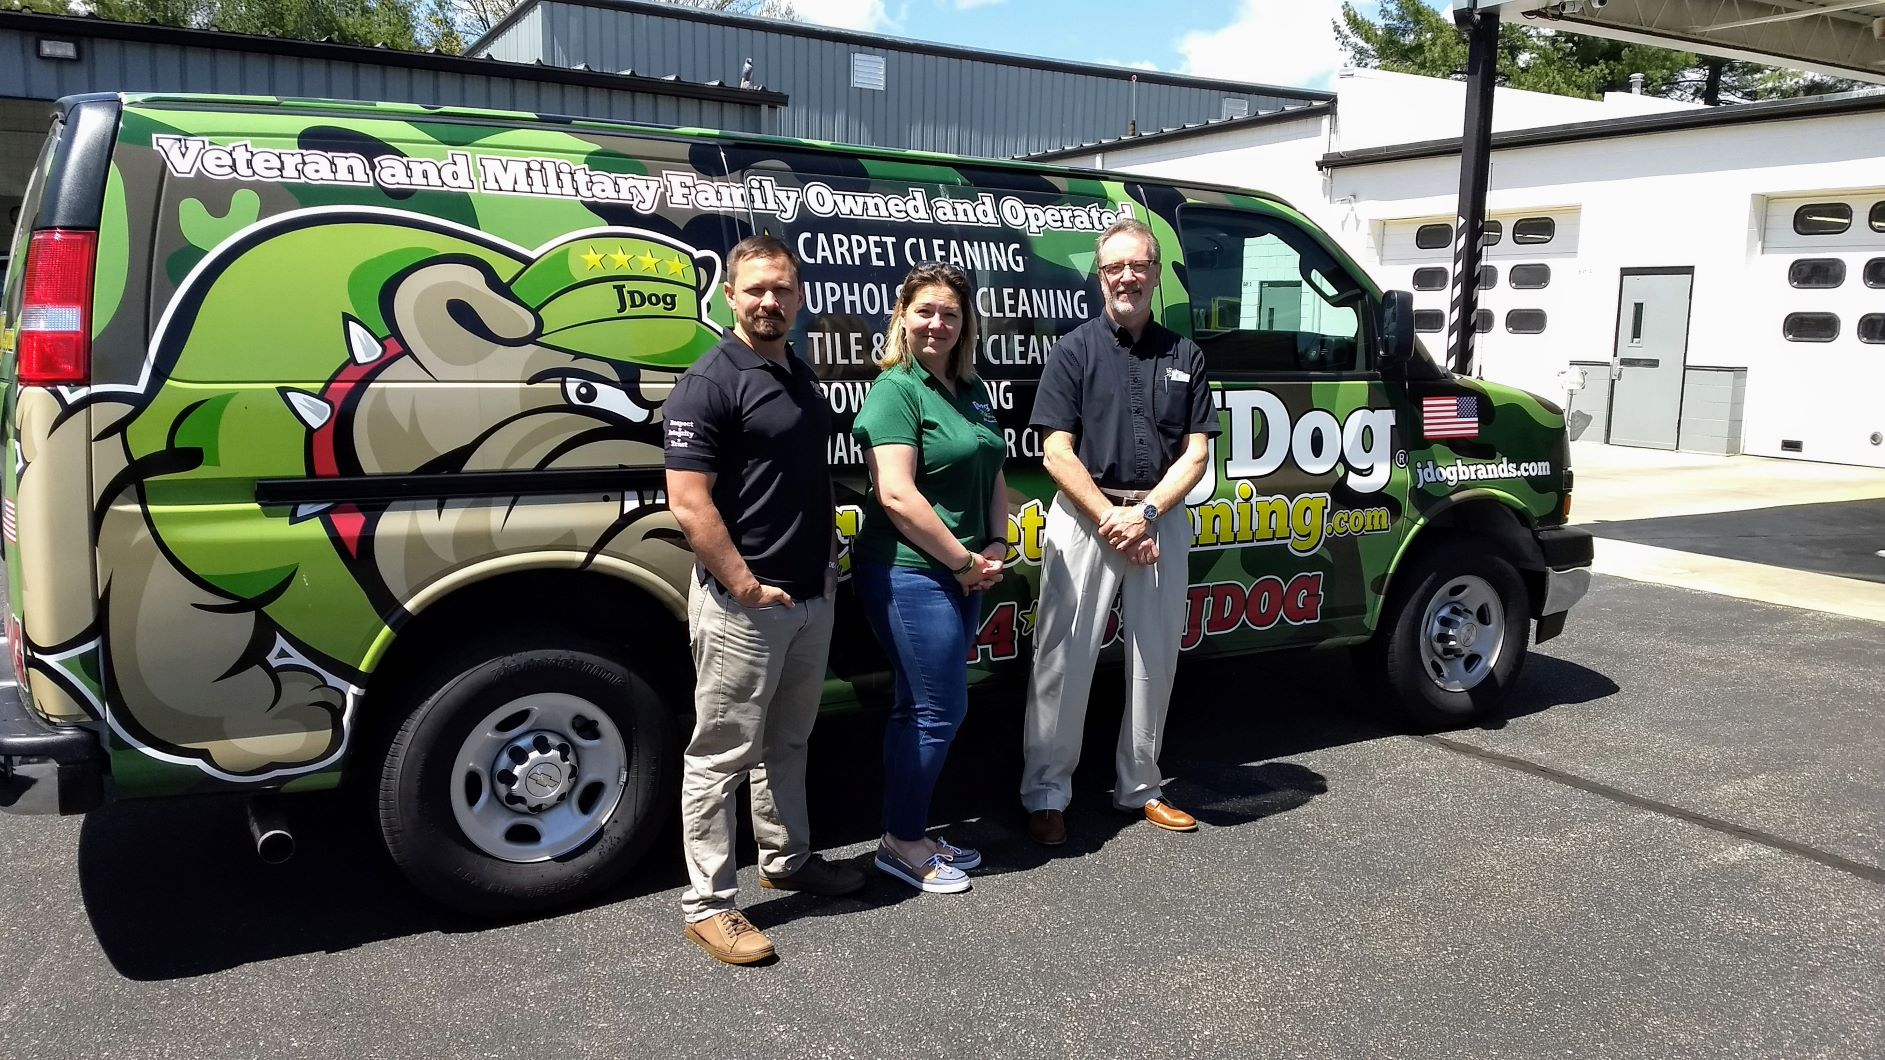 Butler Truckmount Selected By JDog Carpet Cleaning Franchise as Their Exclusive Carpet Cleaning Machine!